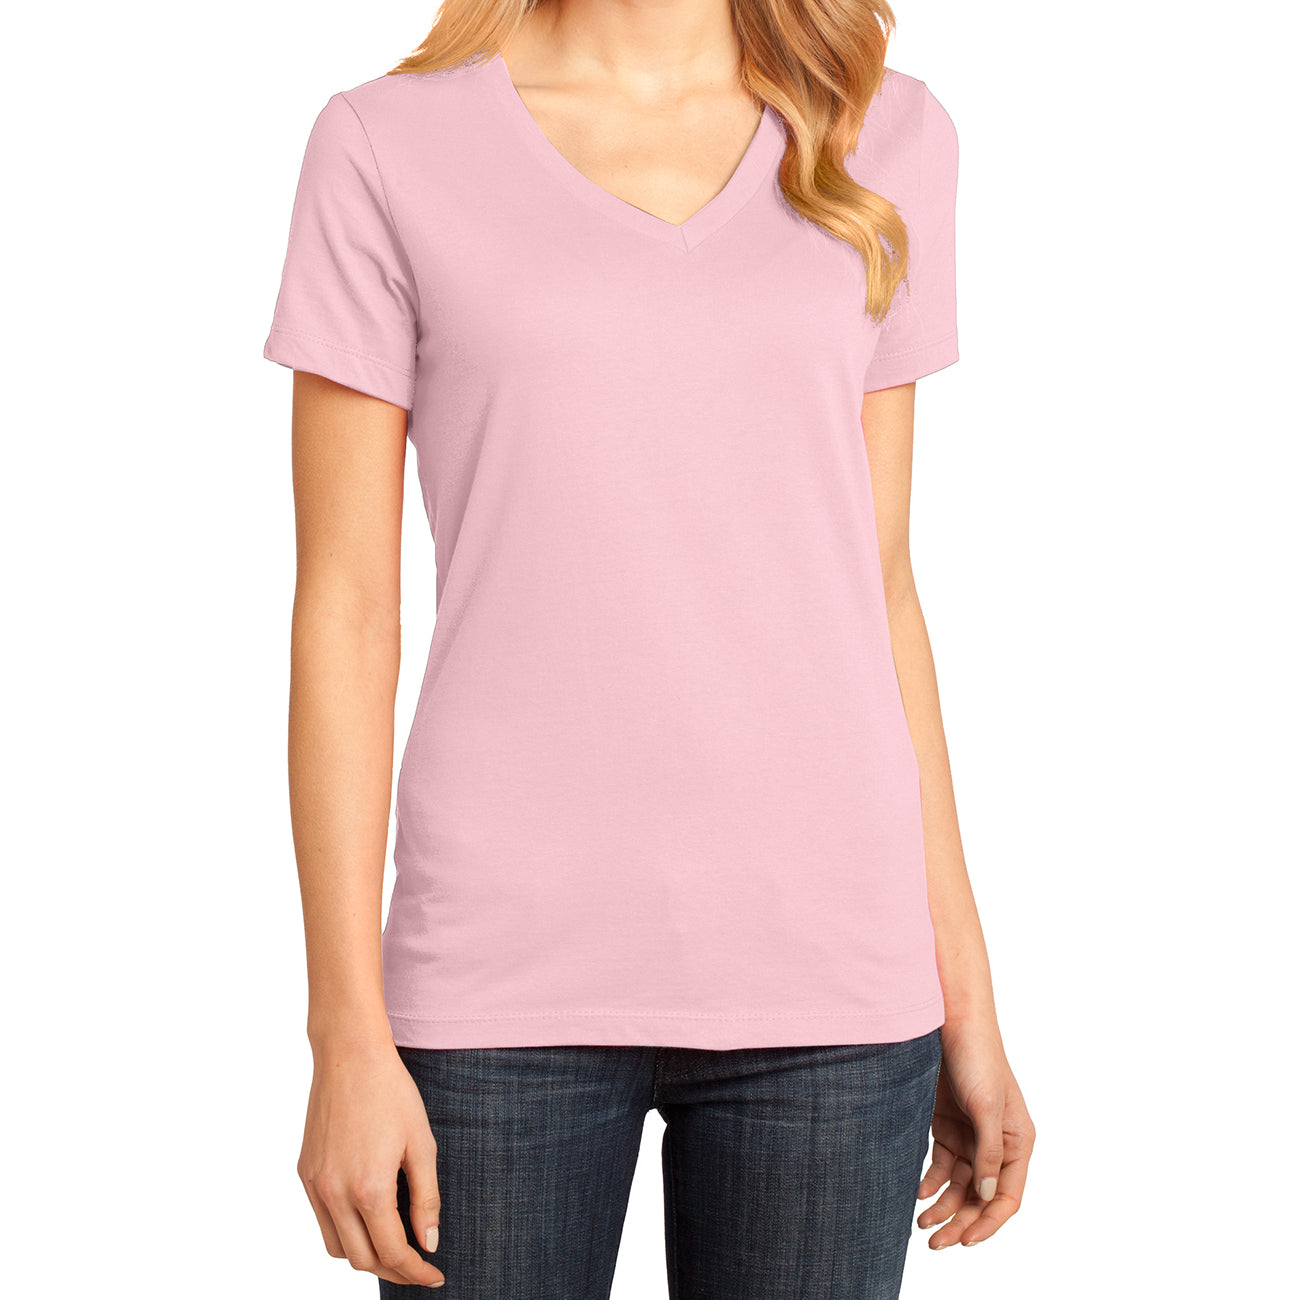 Ladies Perfect Weight V-Neck Tee - Light Pink - Front